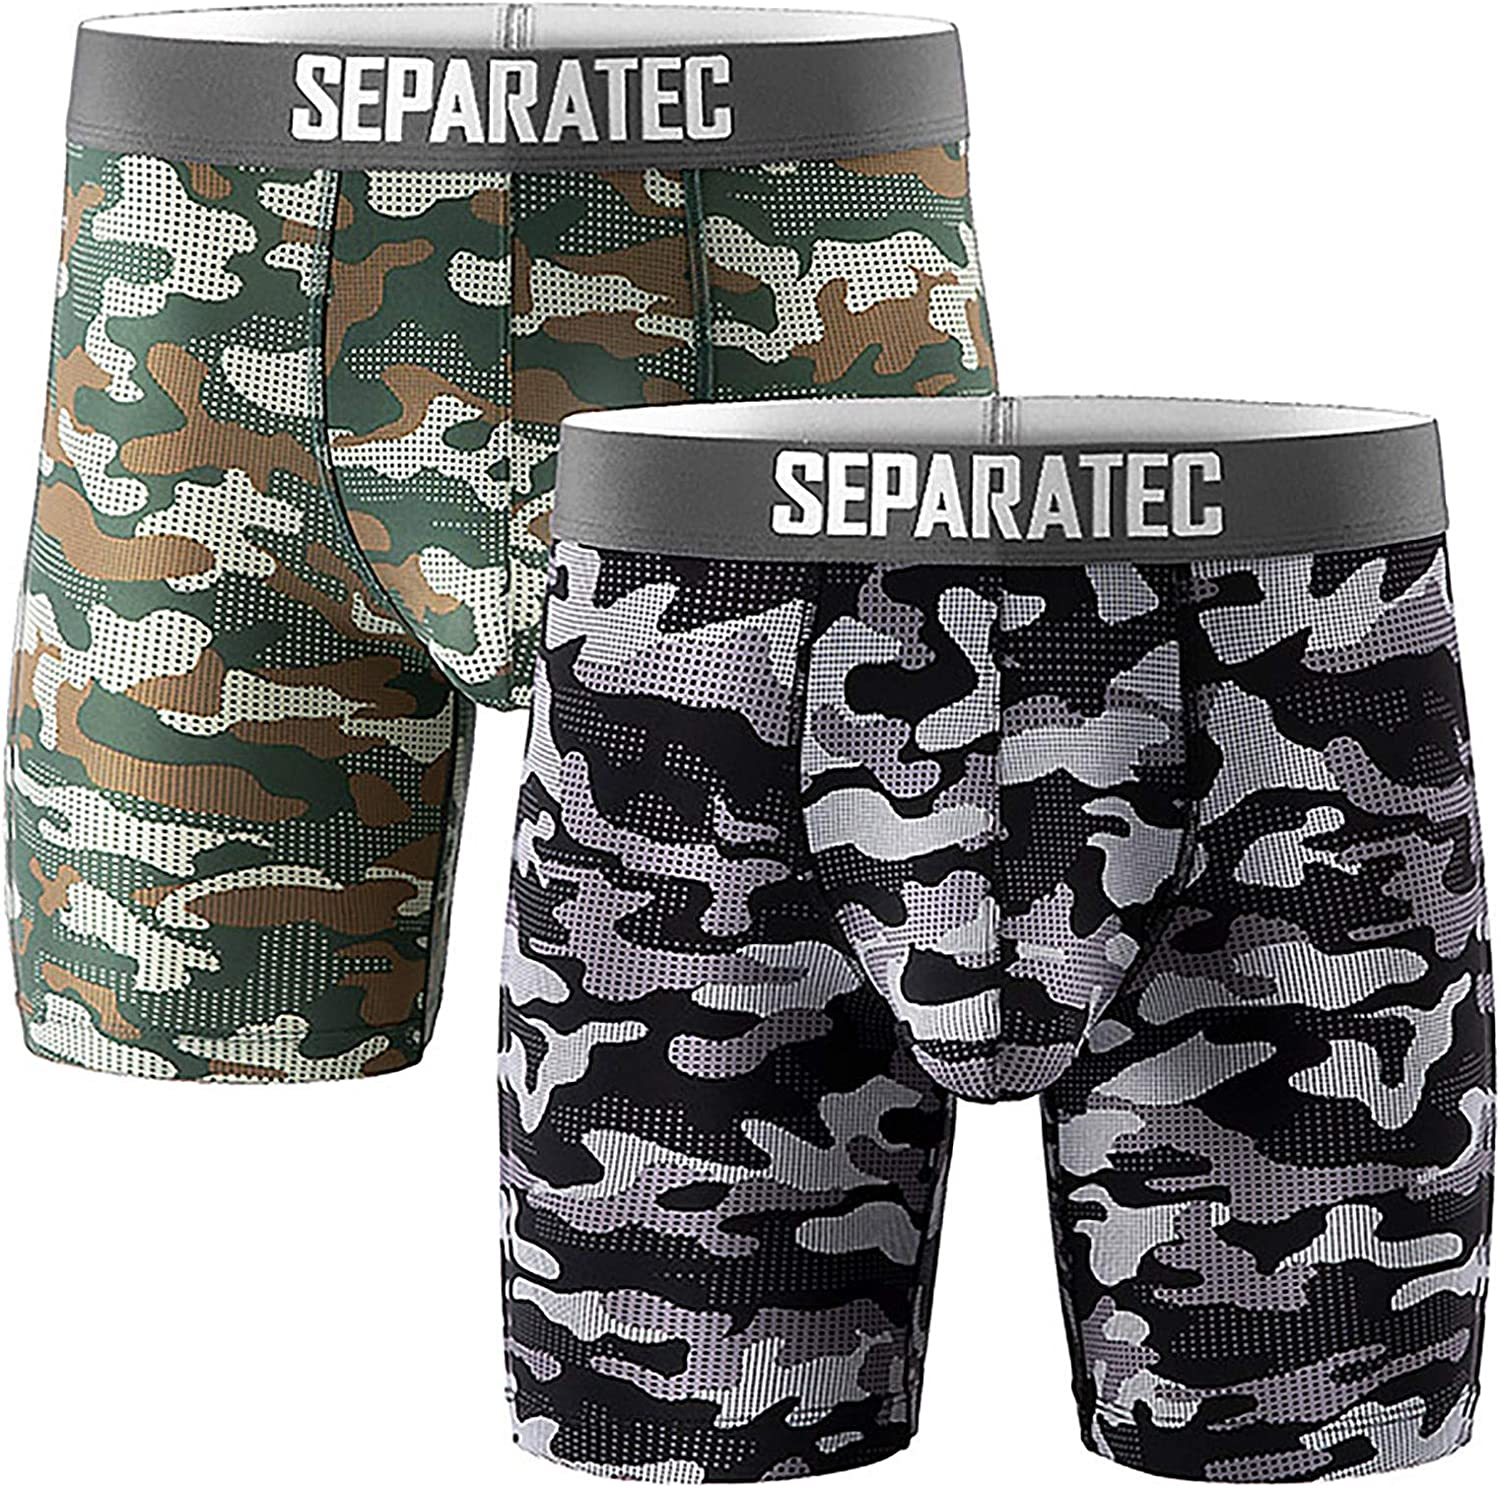 Separatec Men's Underwear Dual Pouch Sport Quick Dry 8'' Camo Boxer Briefs 2 Pack